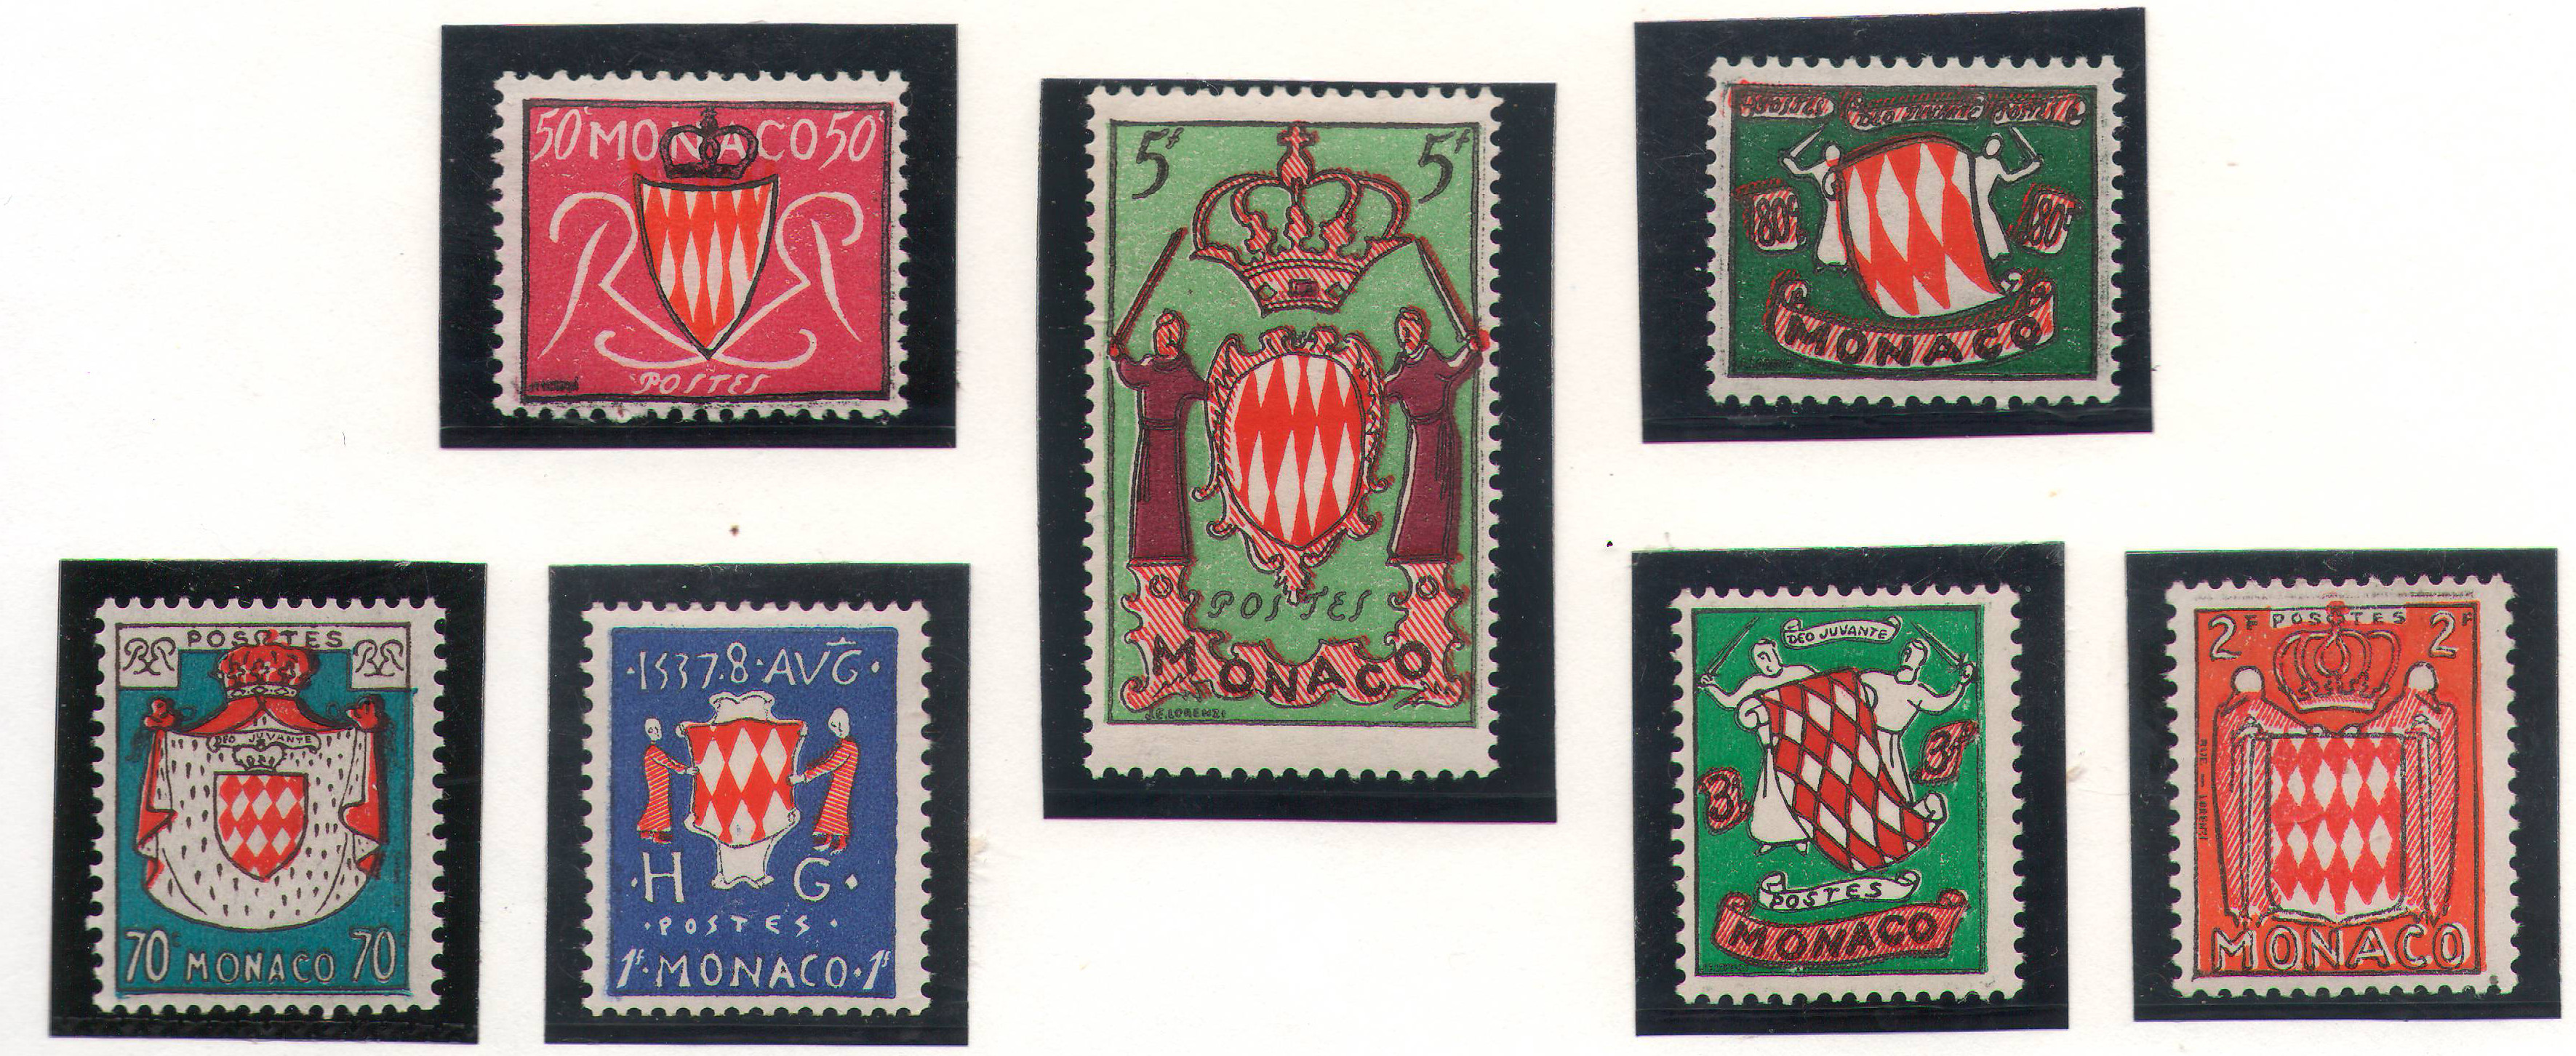 Monaco - 1954 - Emblems - complete set MNH ** (except for lowest value which is MH)